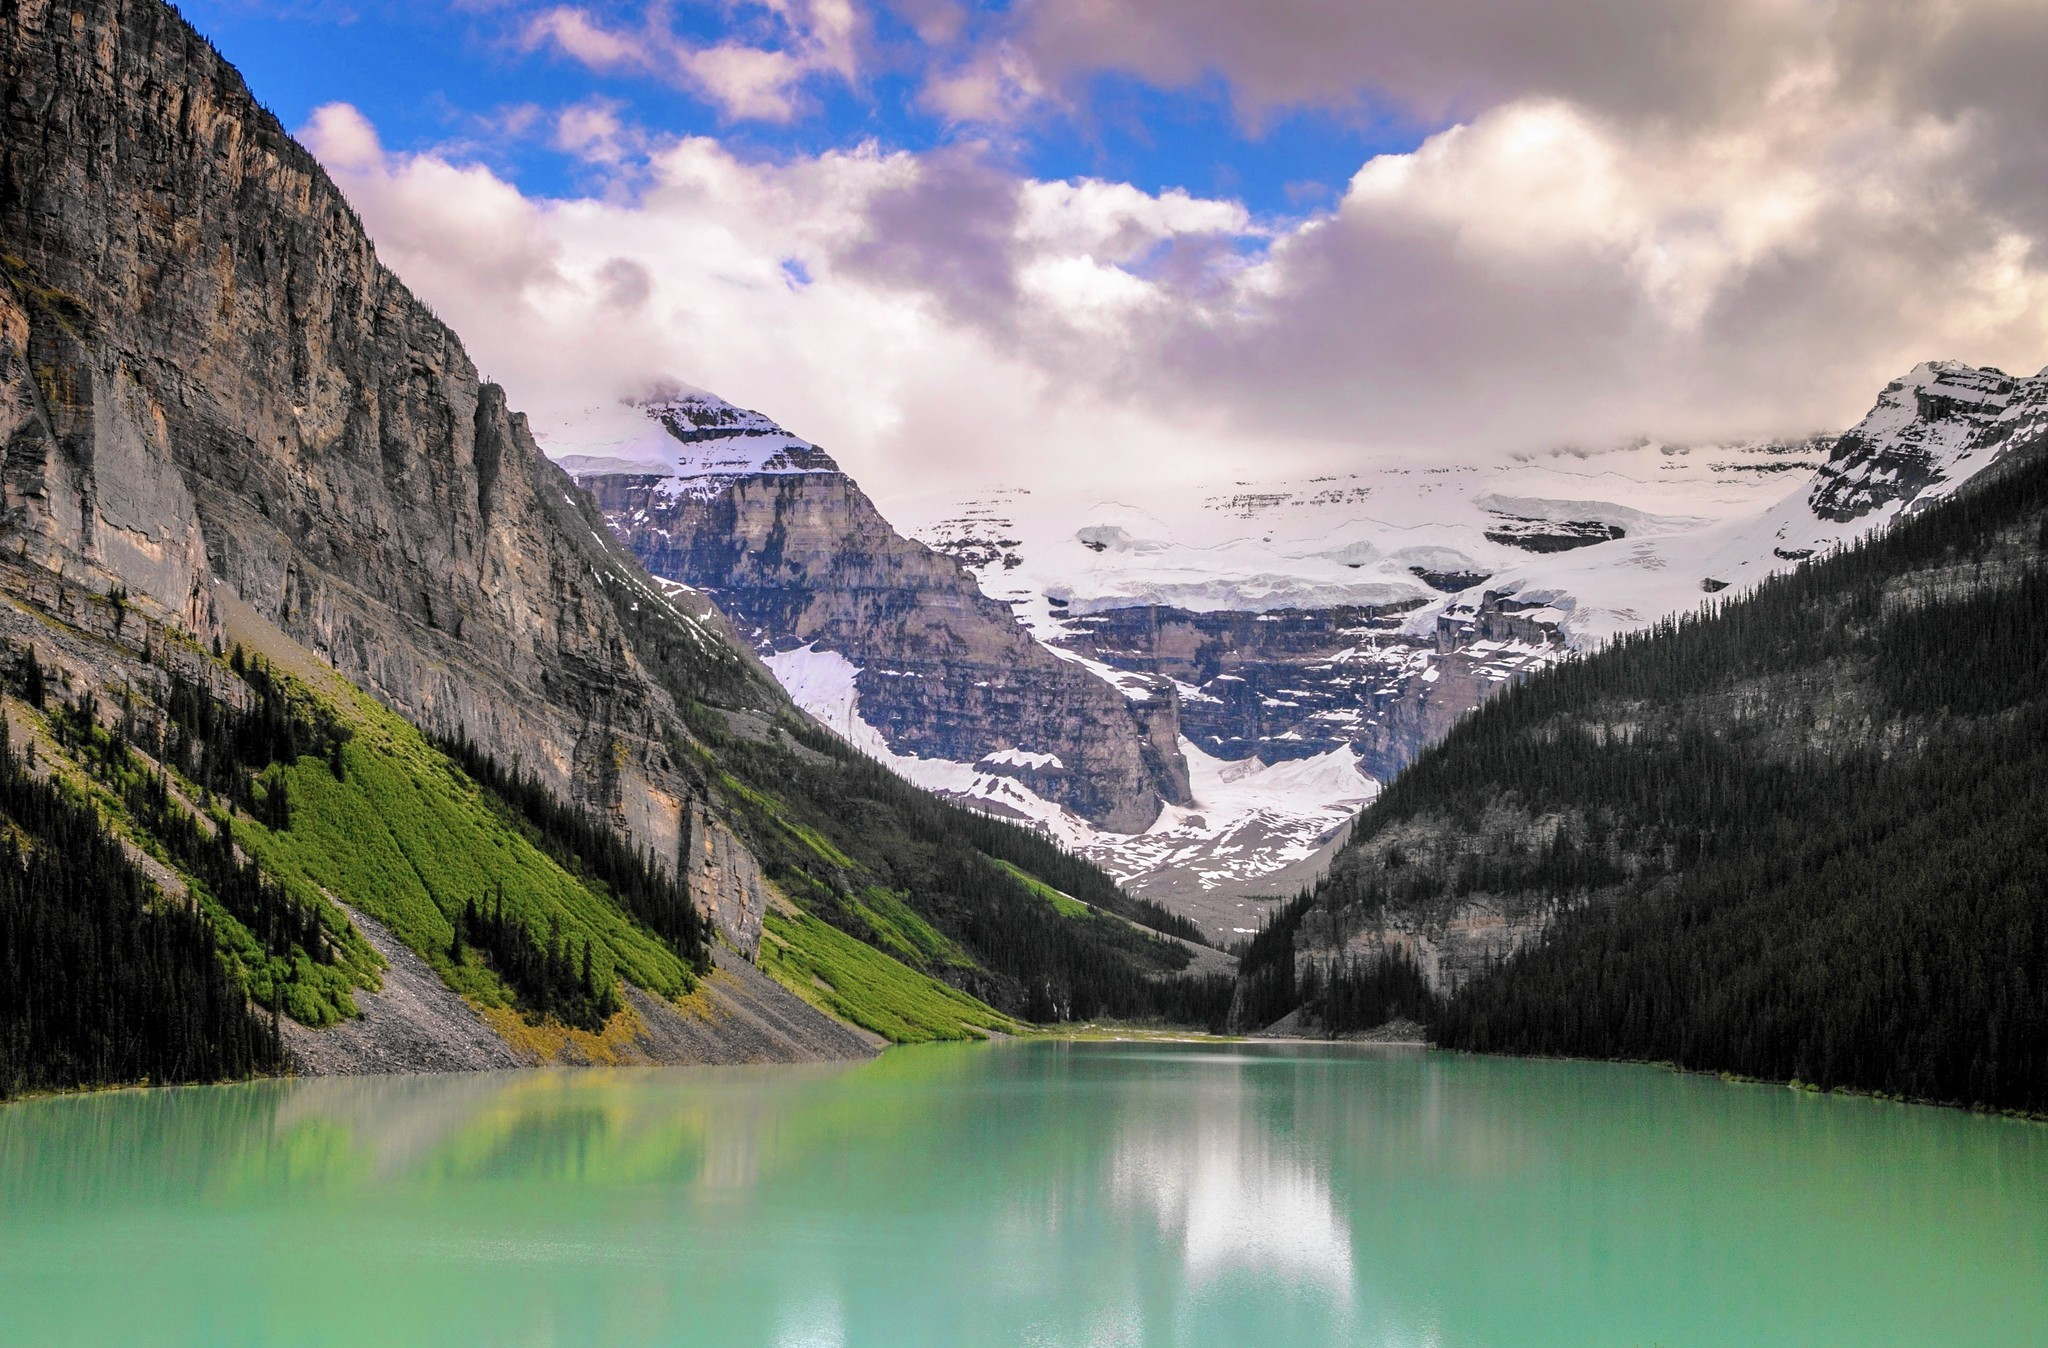 10 Best Canada Mountains That You Must Not Miss Out On